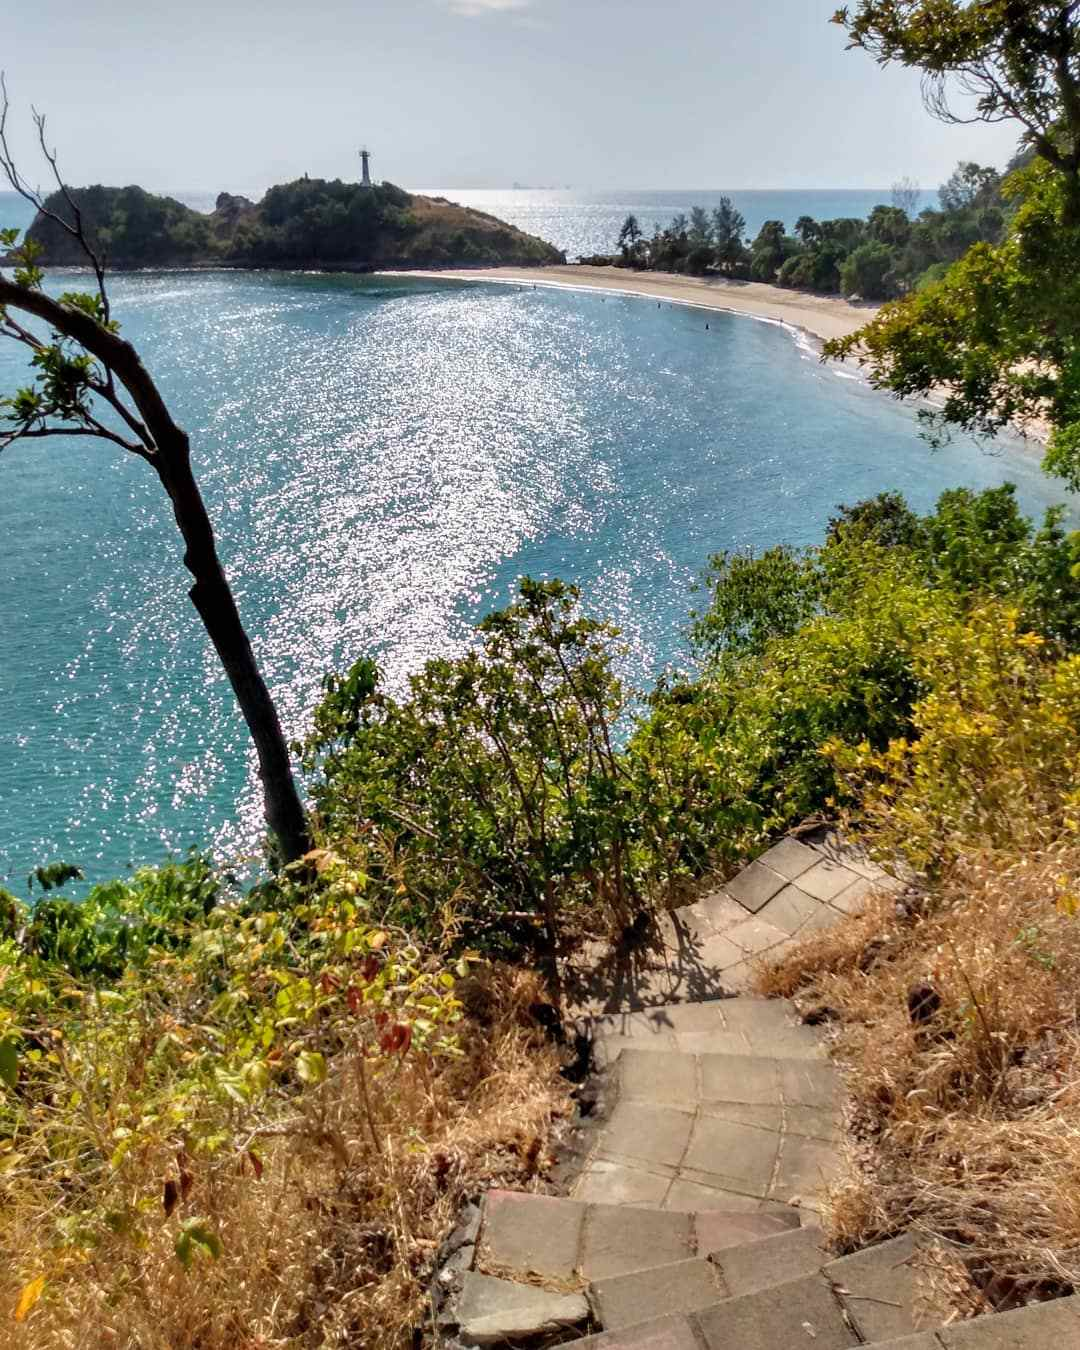 View of the lighthouse and the beach of Mu Koh Lanta National Park in the distance